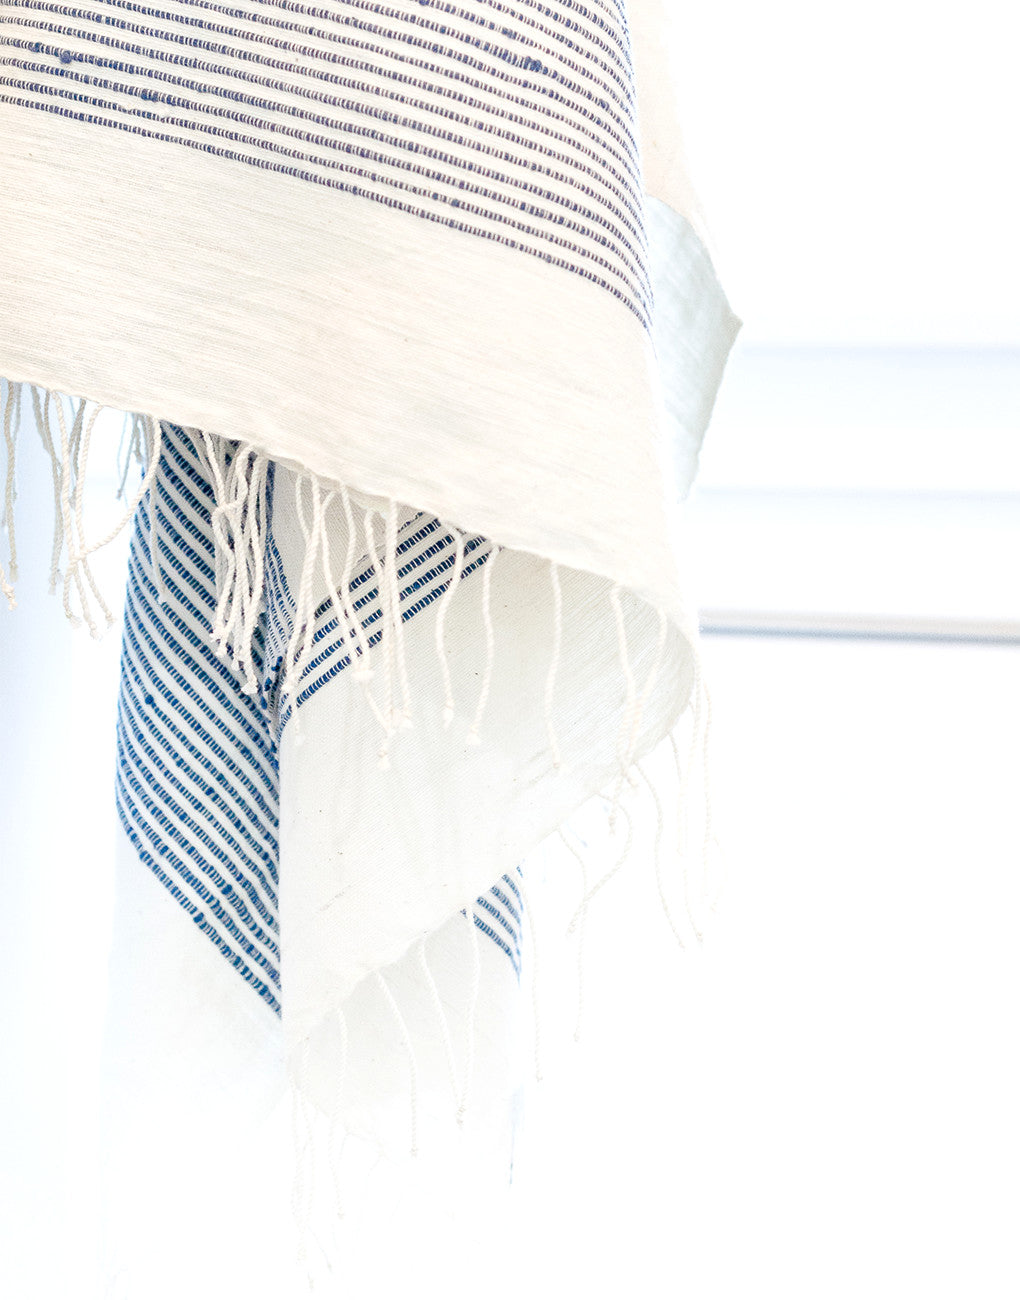 Fair Trade, Handmade Ethiopian Cotton Bath Towel, Navy & White